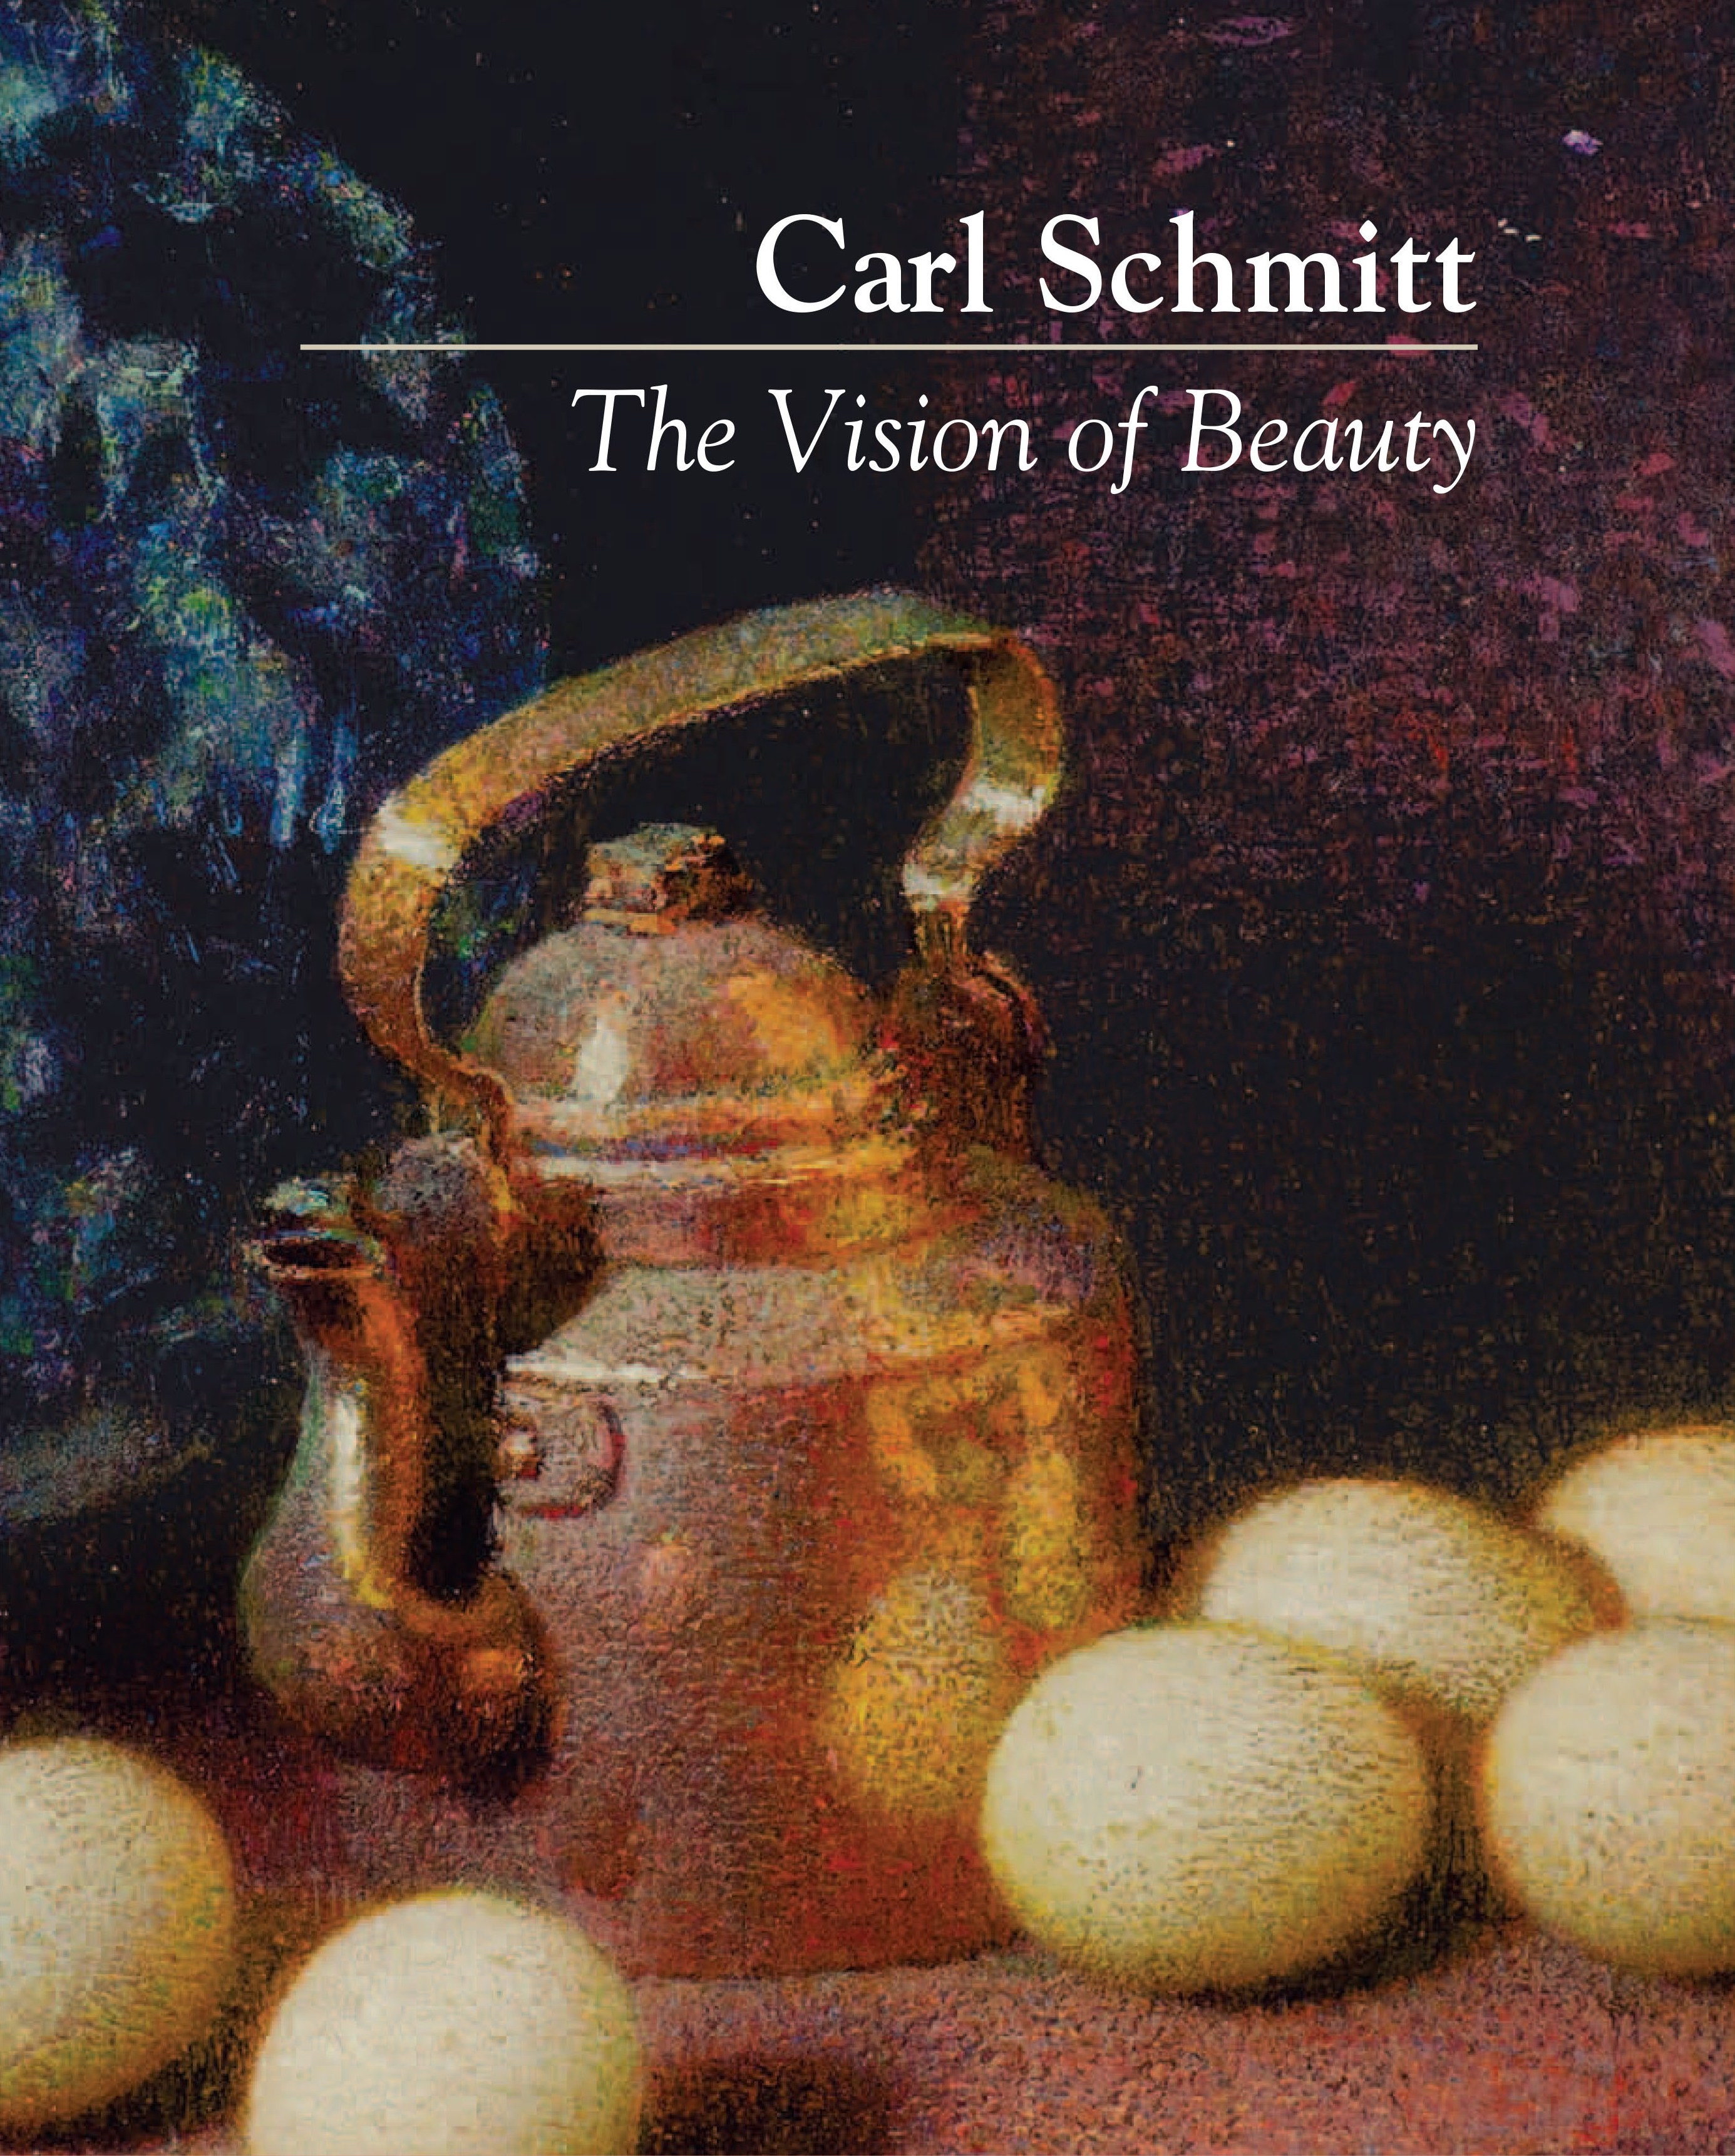 Order the book Carl Schmitt: The Vision of Beauty